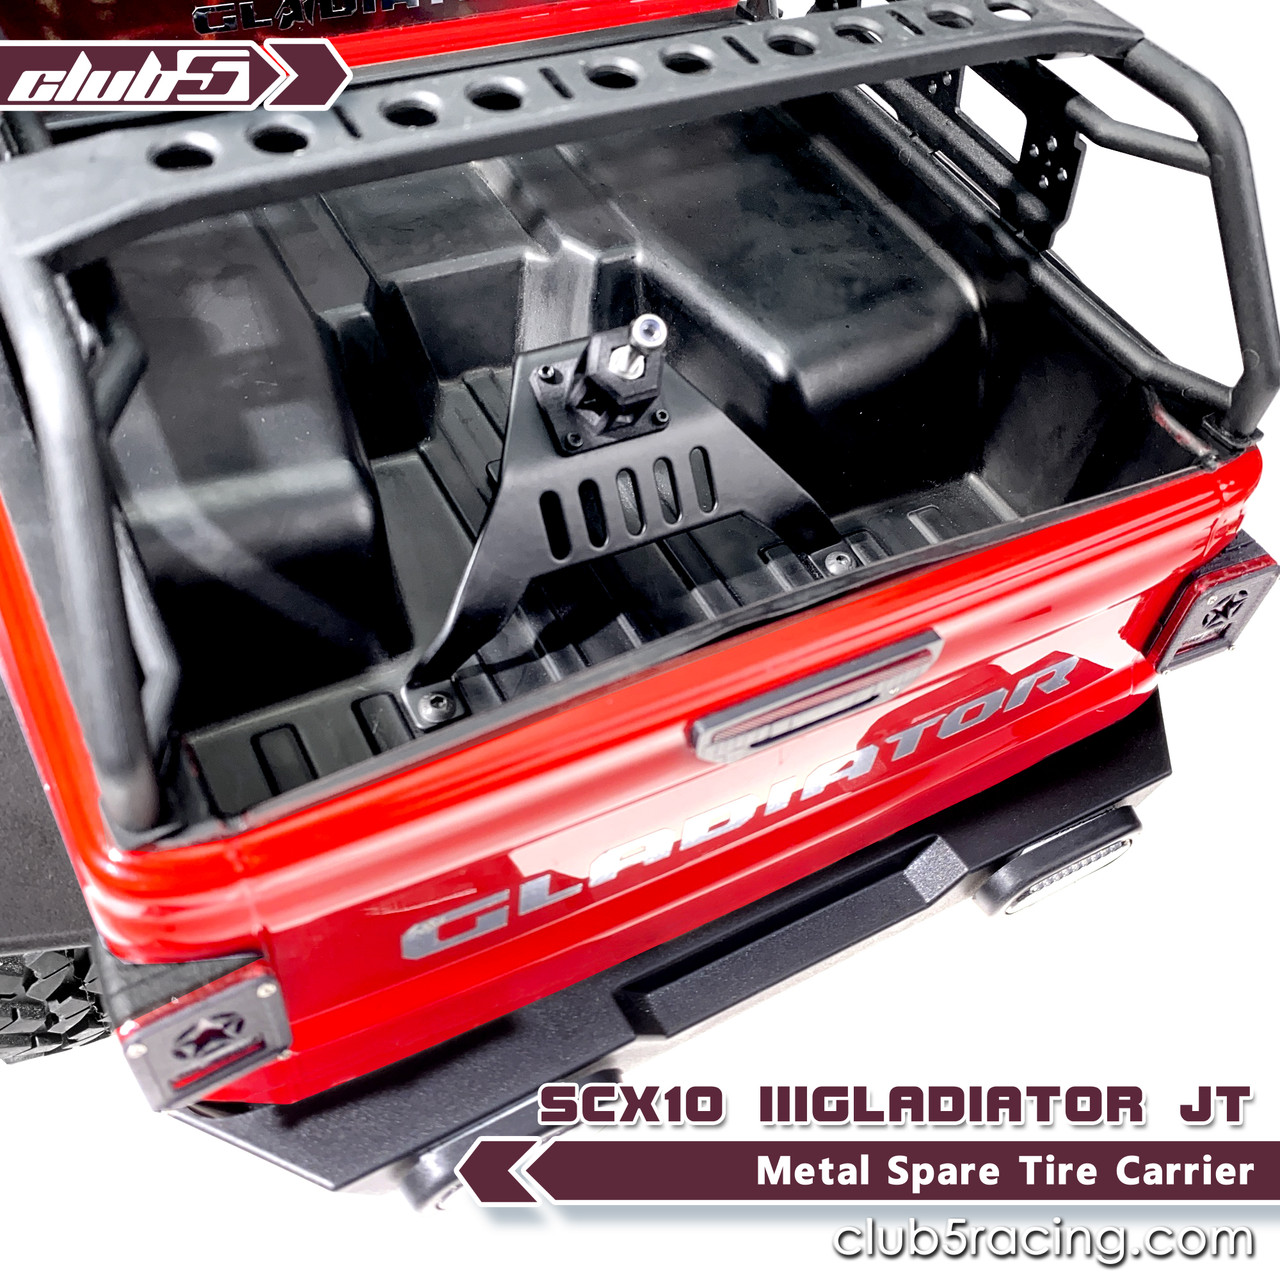 Metal Spare Tire Carrier for Axial SCX10 III JT Gladiator